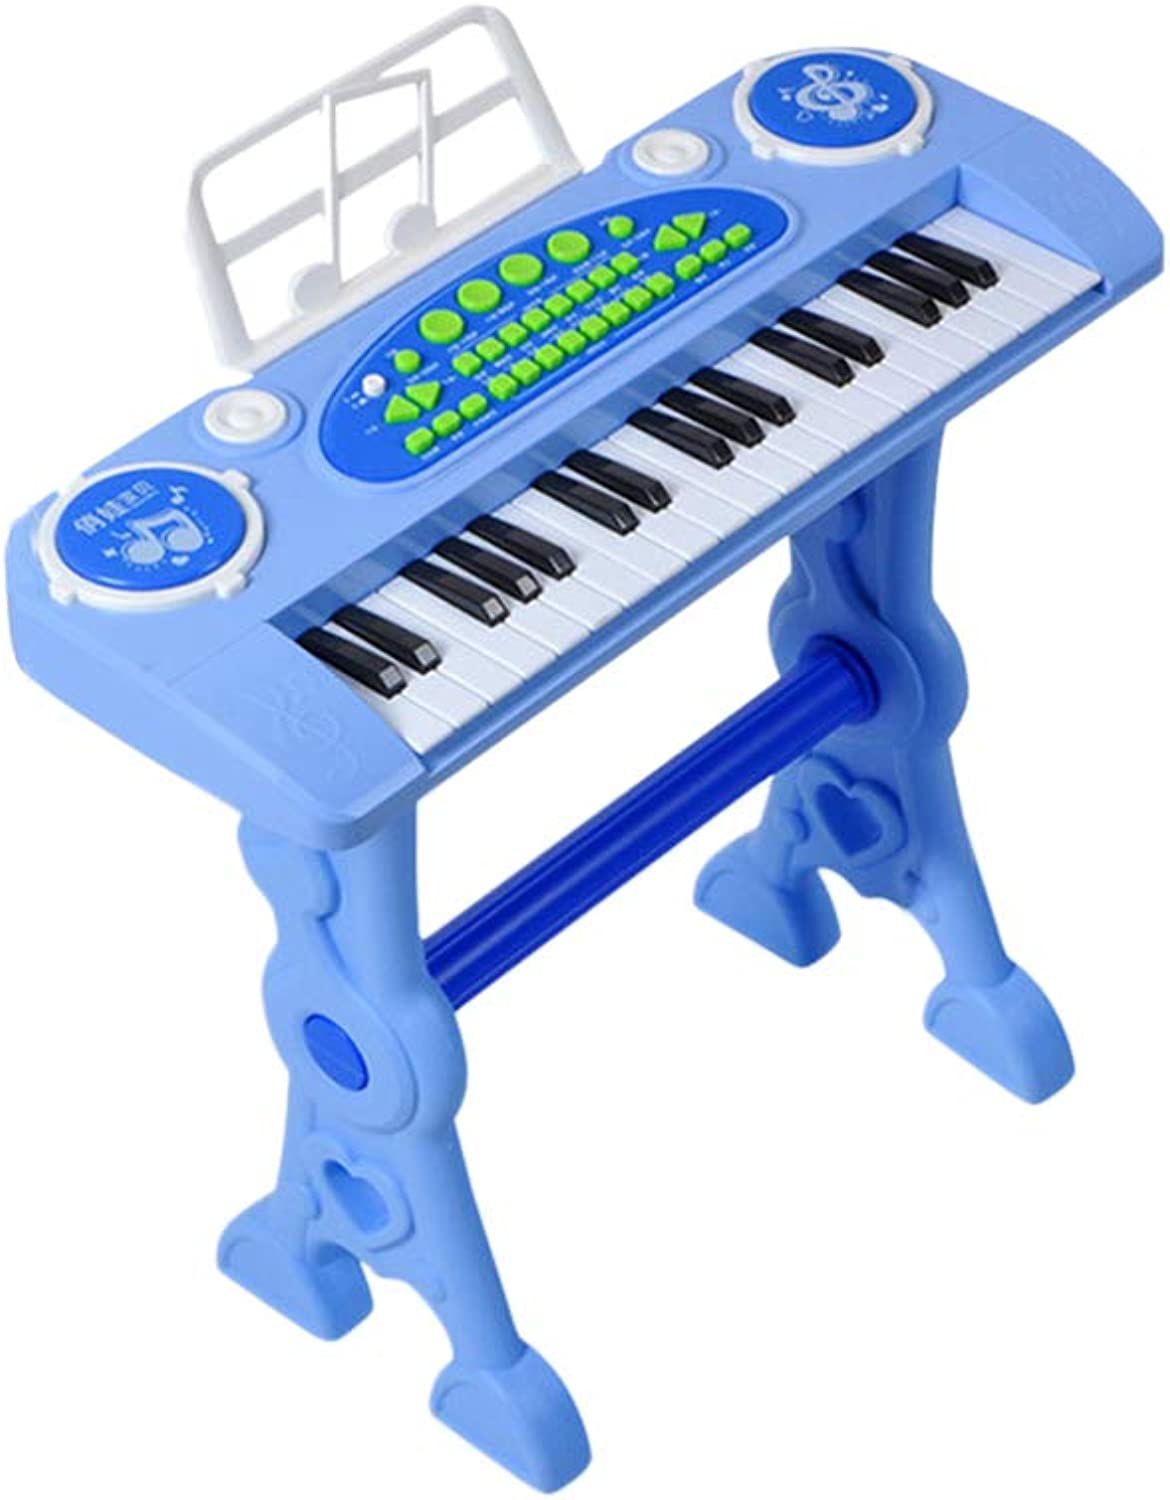 Toyvian 37 Key Keyboard Piano with Microphone and Stool Electronic Keyboard Music Instrument for Kids Toddlers Girls Boys Gifts with US Plug(bluee)